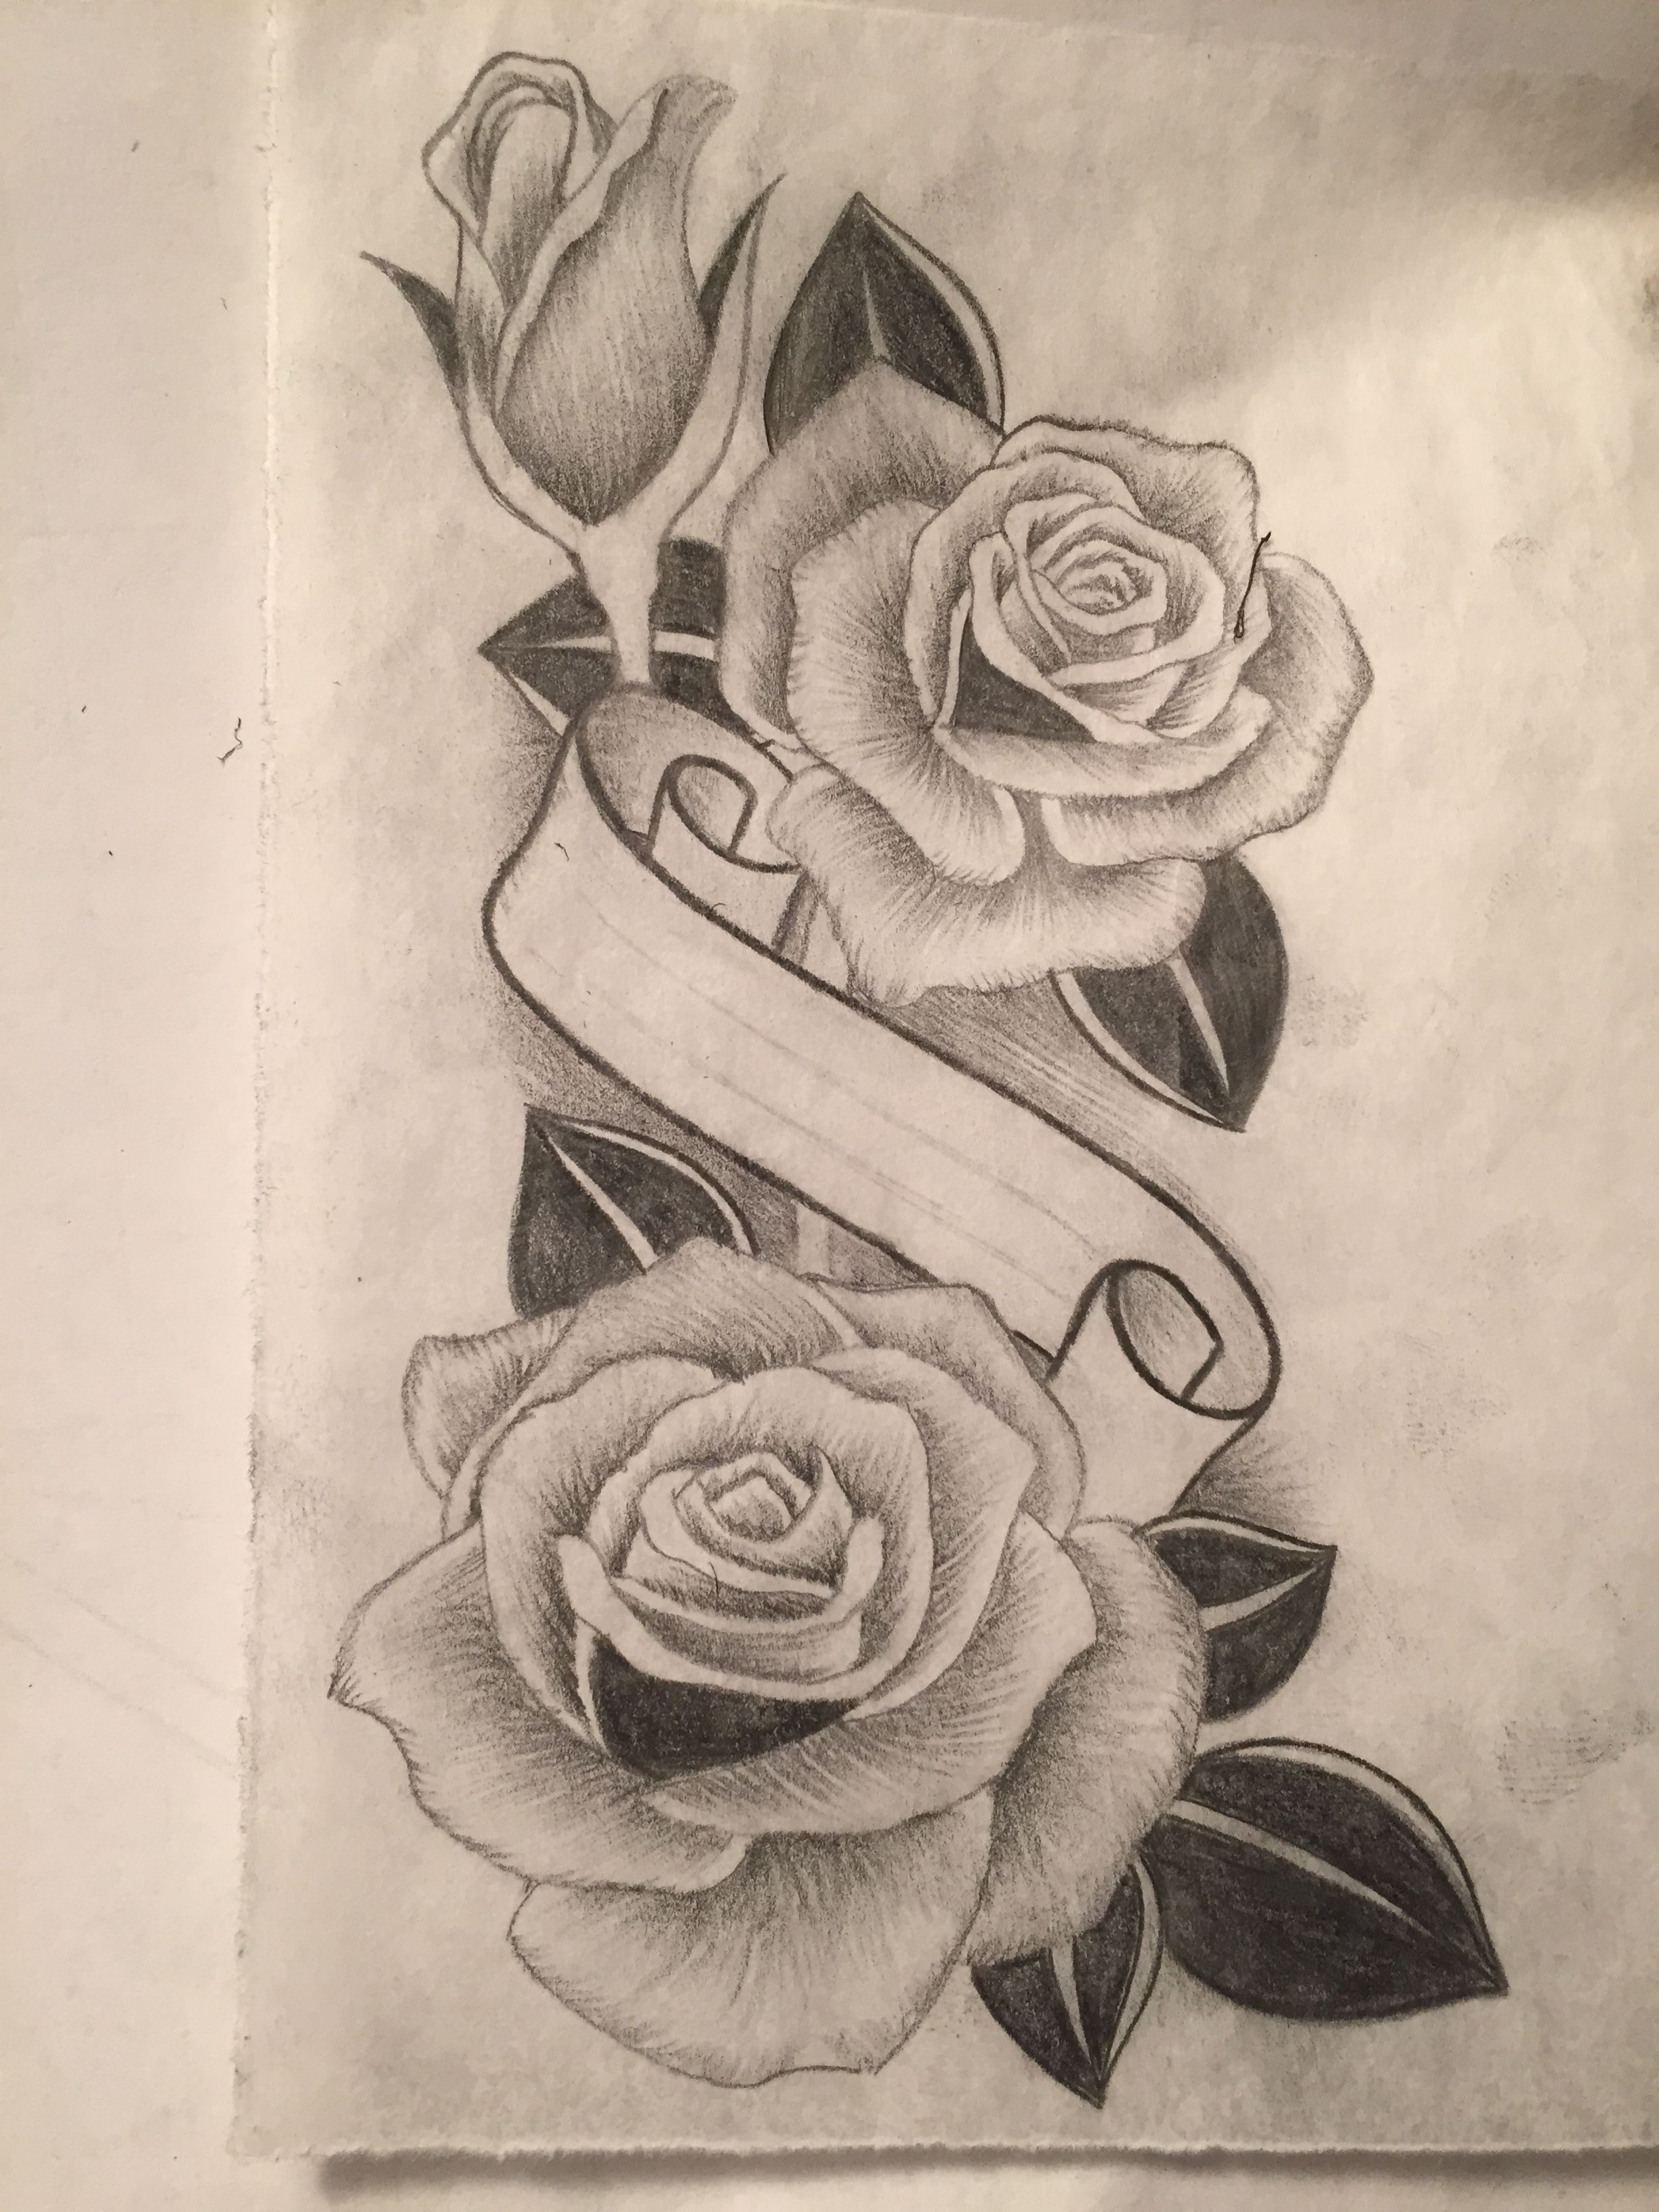 Rose Design With Banner In Center Of Roses Realistic Rose Tattoo Flower Drawing Floral Tattoo Design